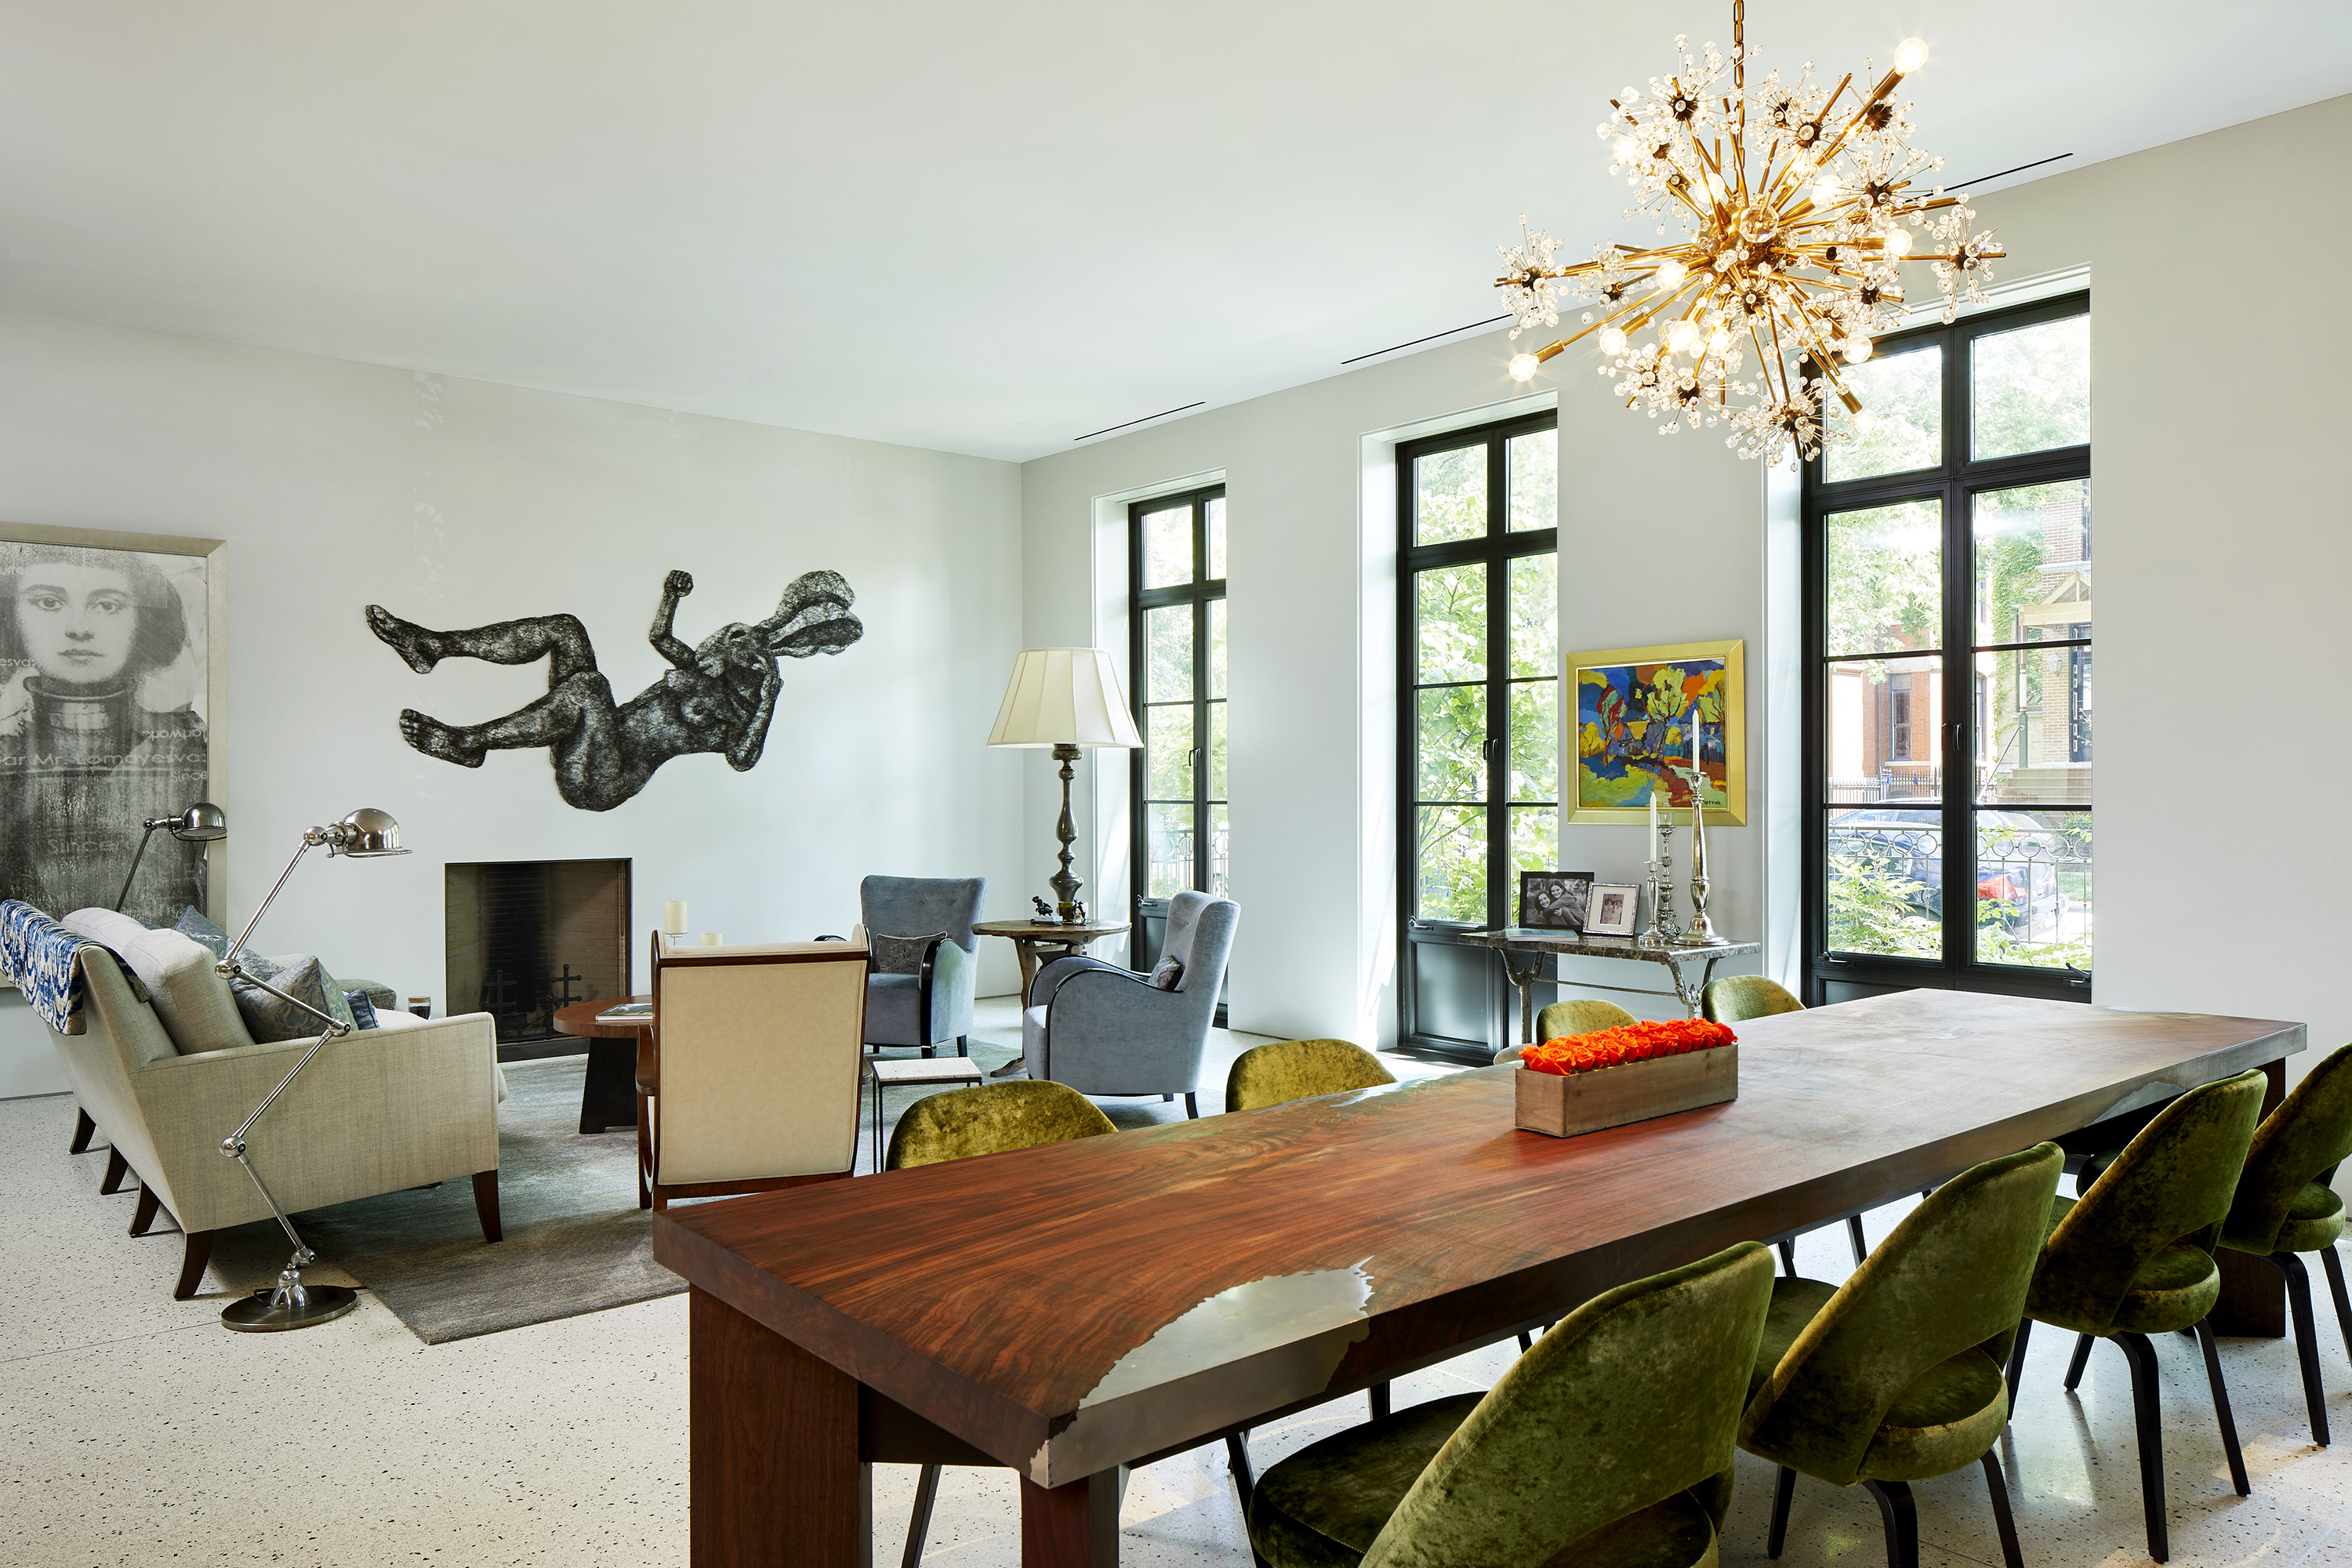 this grand wicker park home started as a 19th century carriage